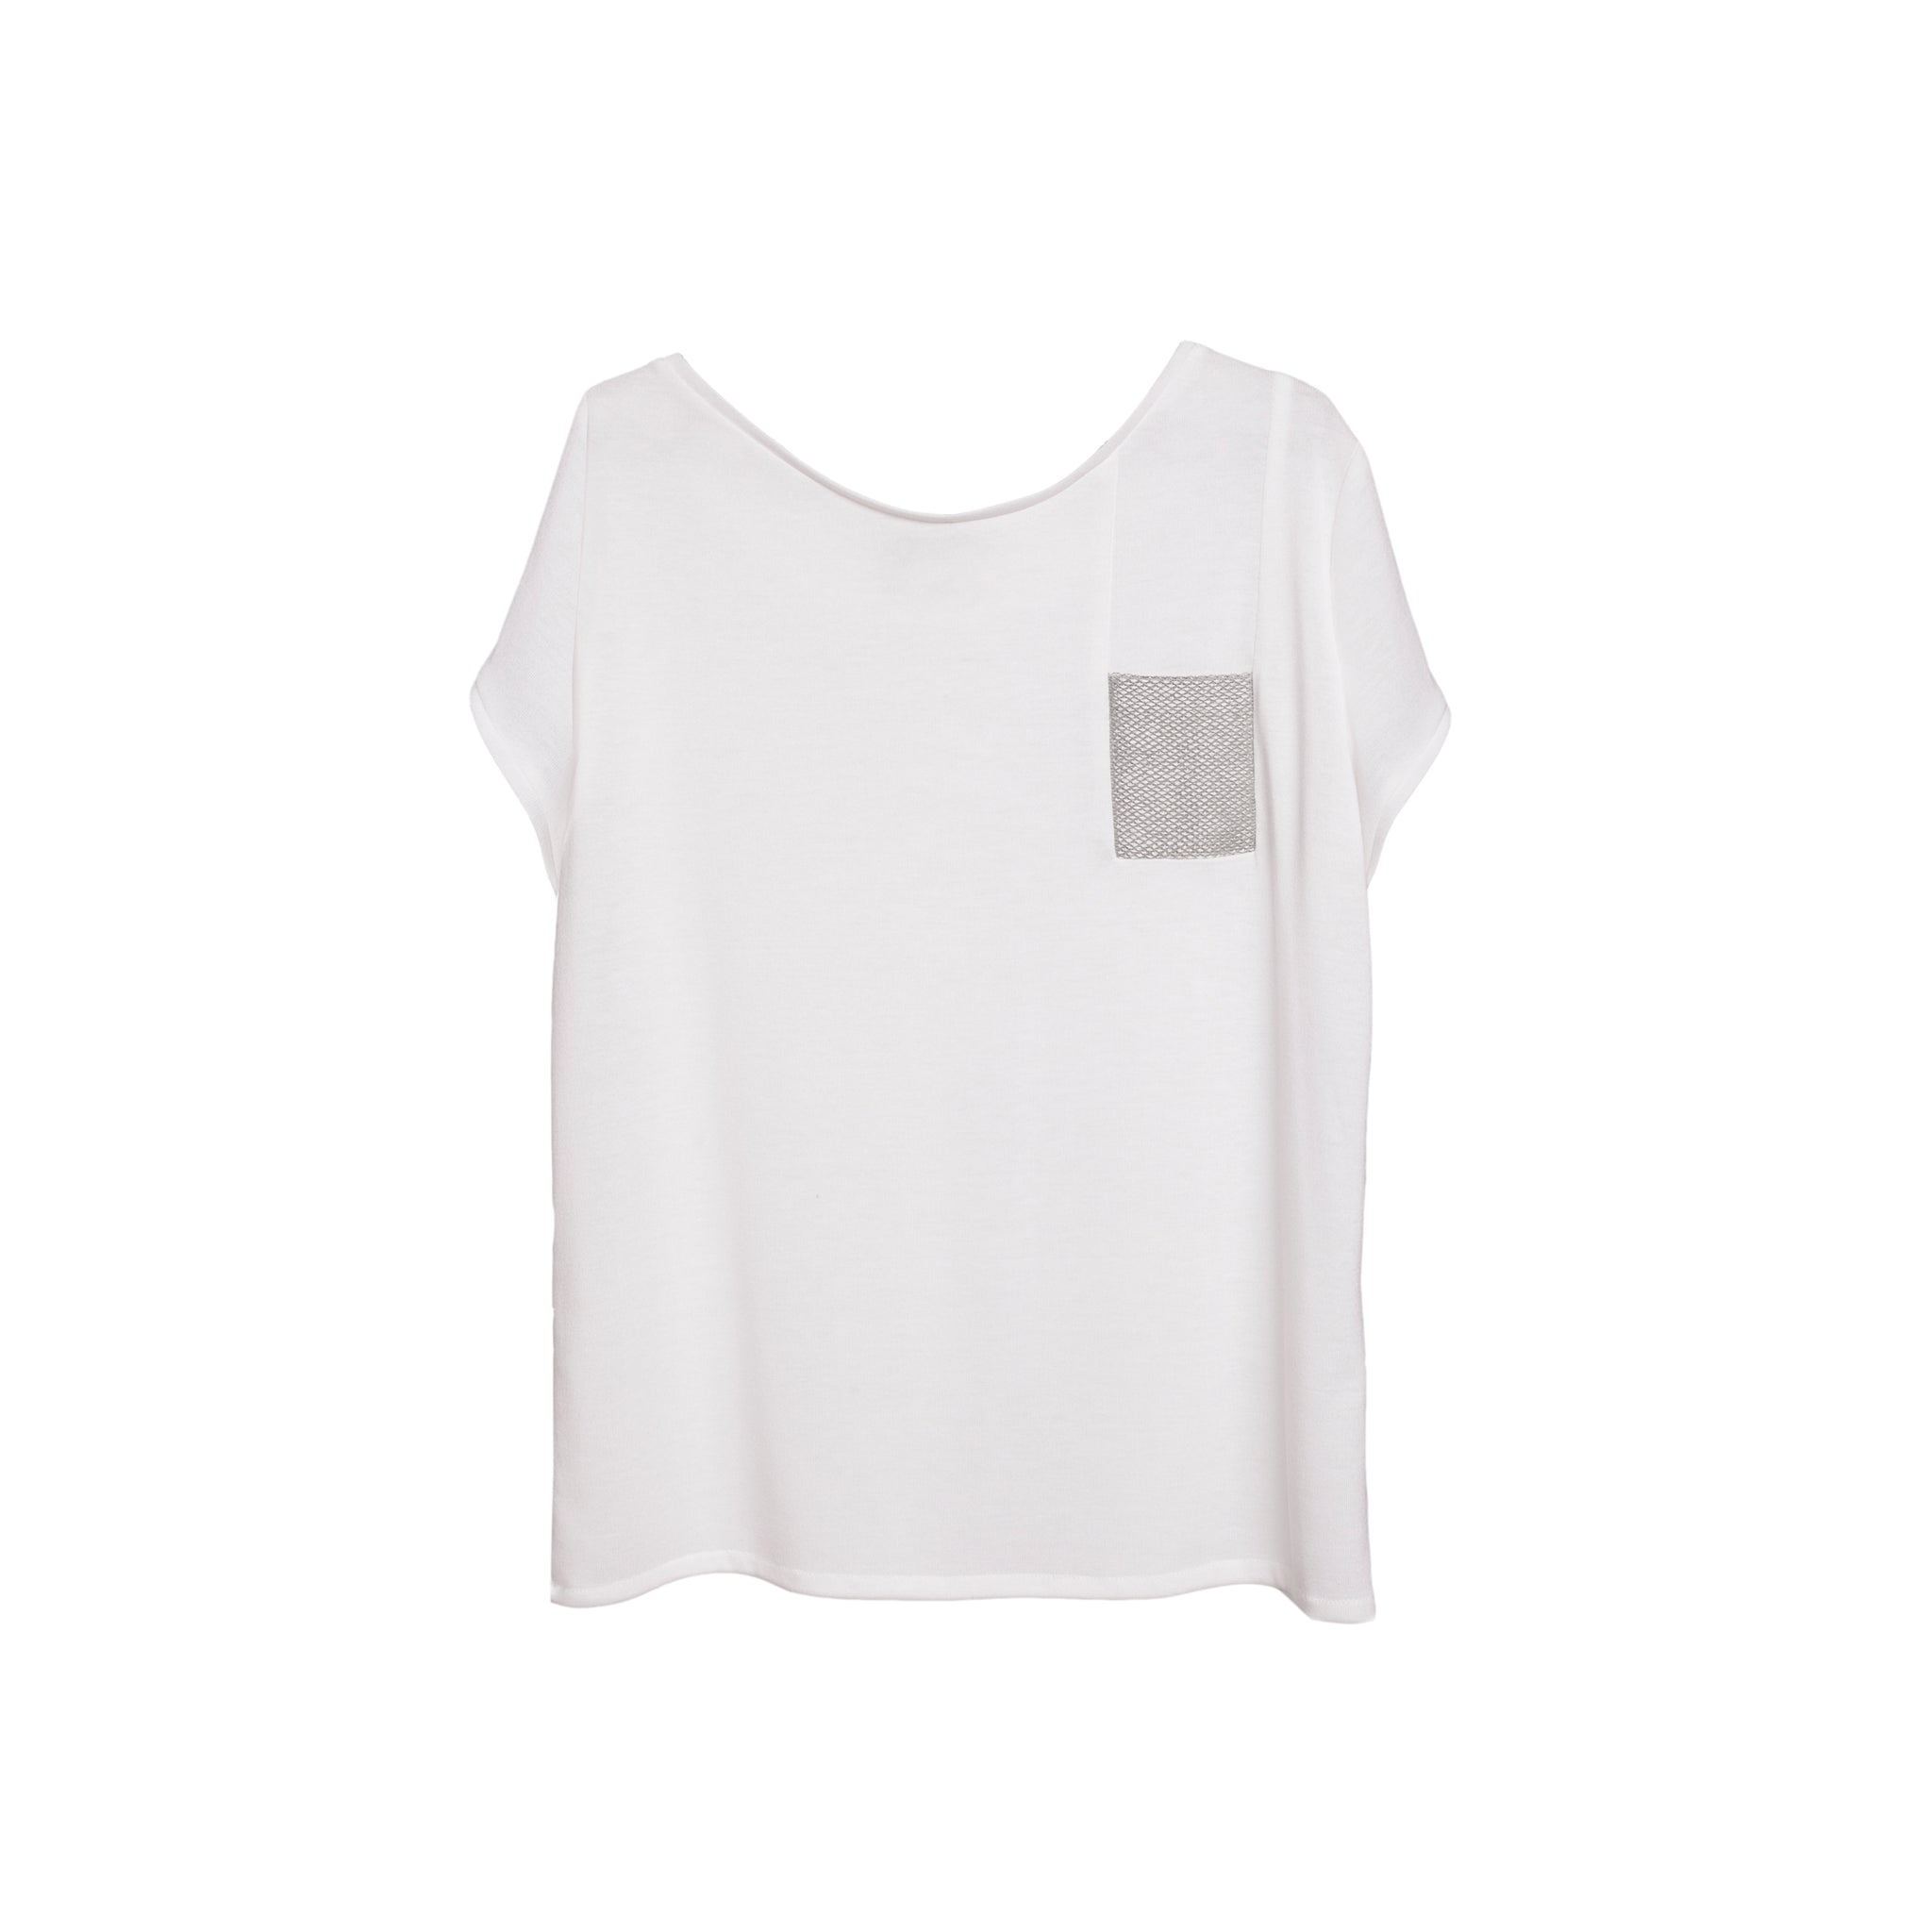 *MON White Oversized T-Shirt - Silver Pocket